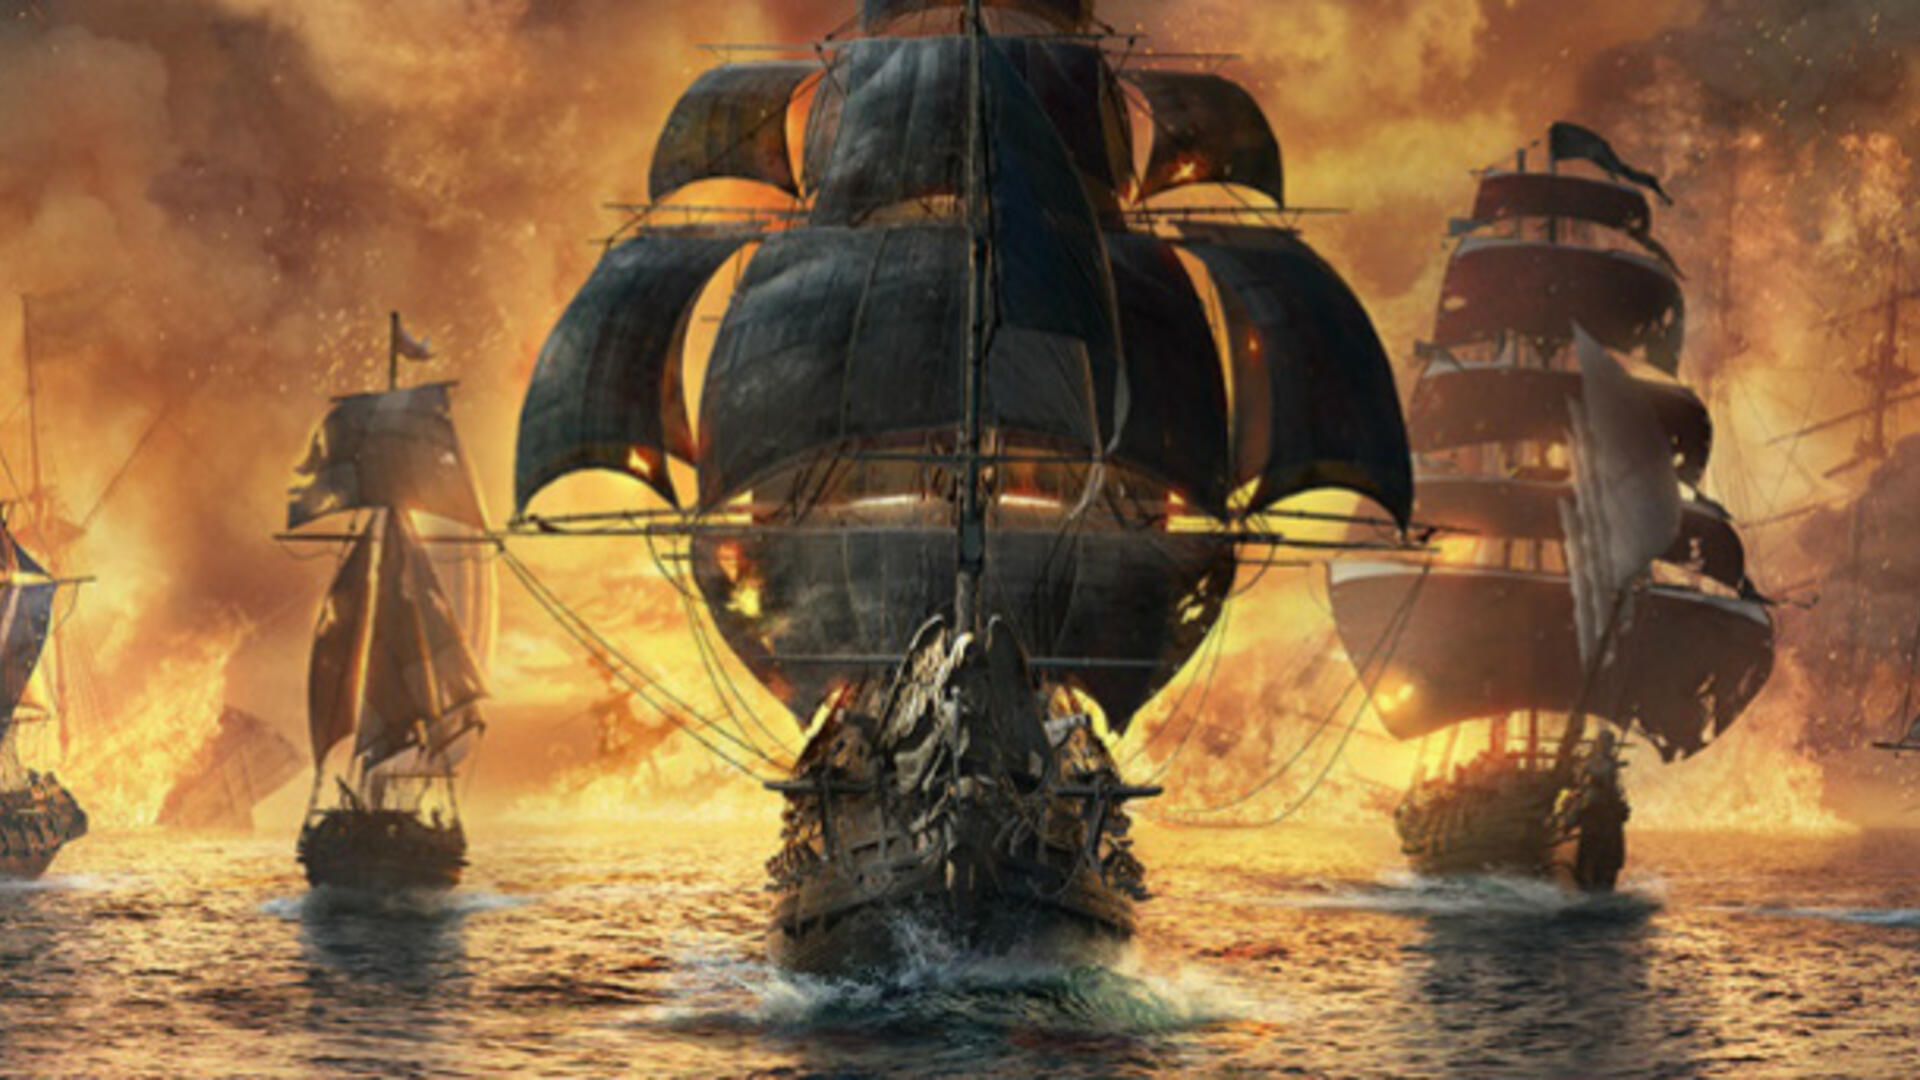 Skull & Bones Isn't The Black Flag Sequel You're Looking For, But